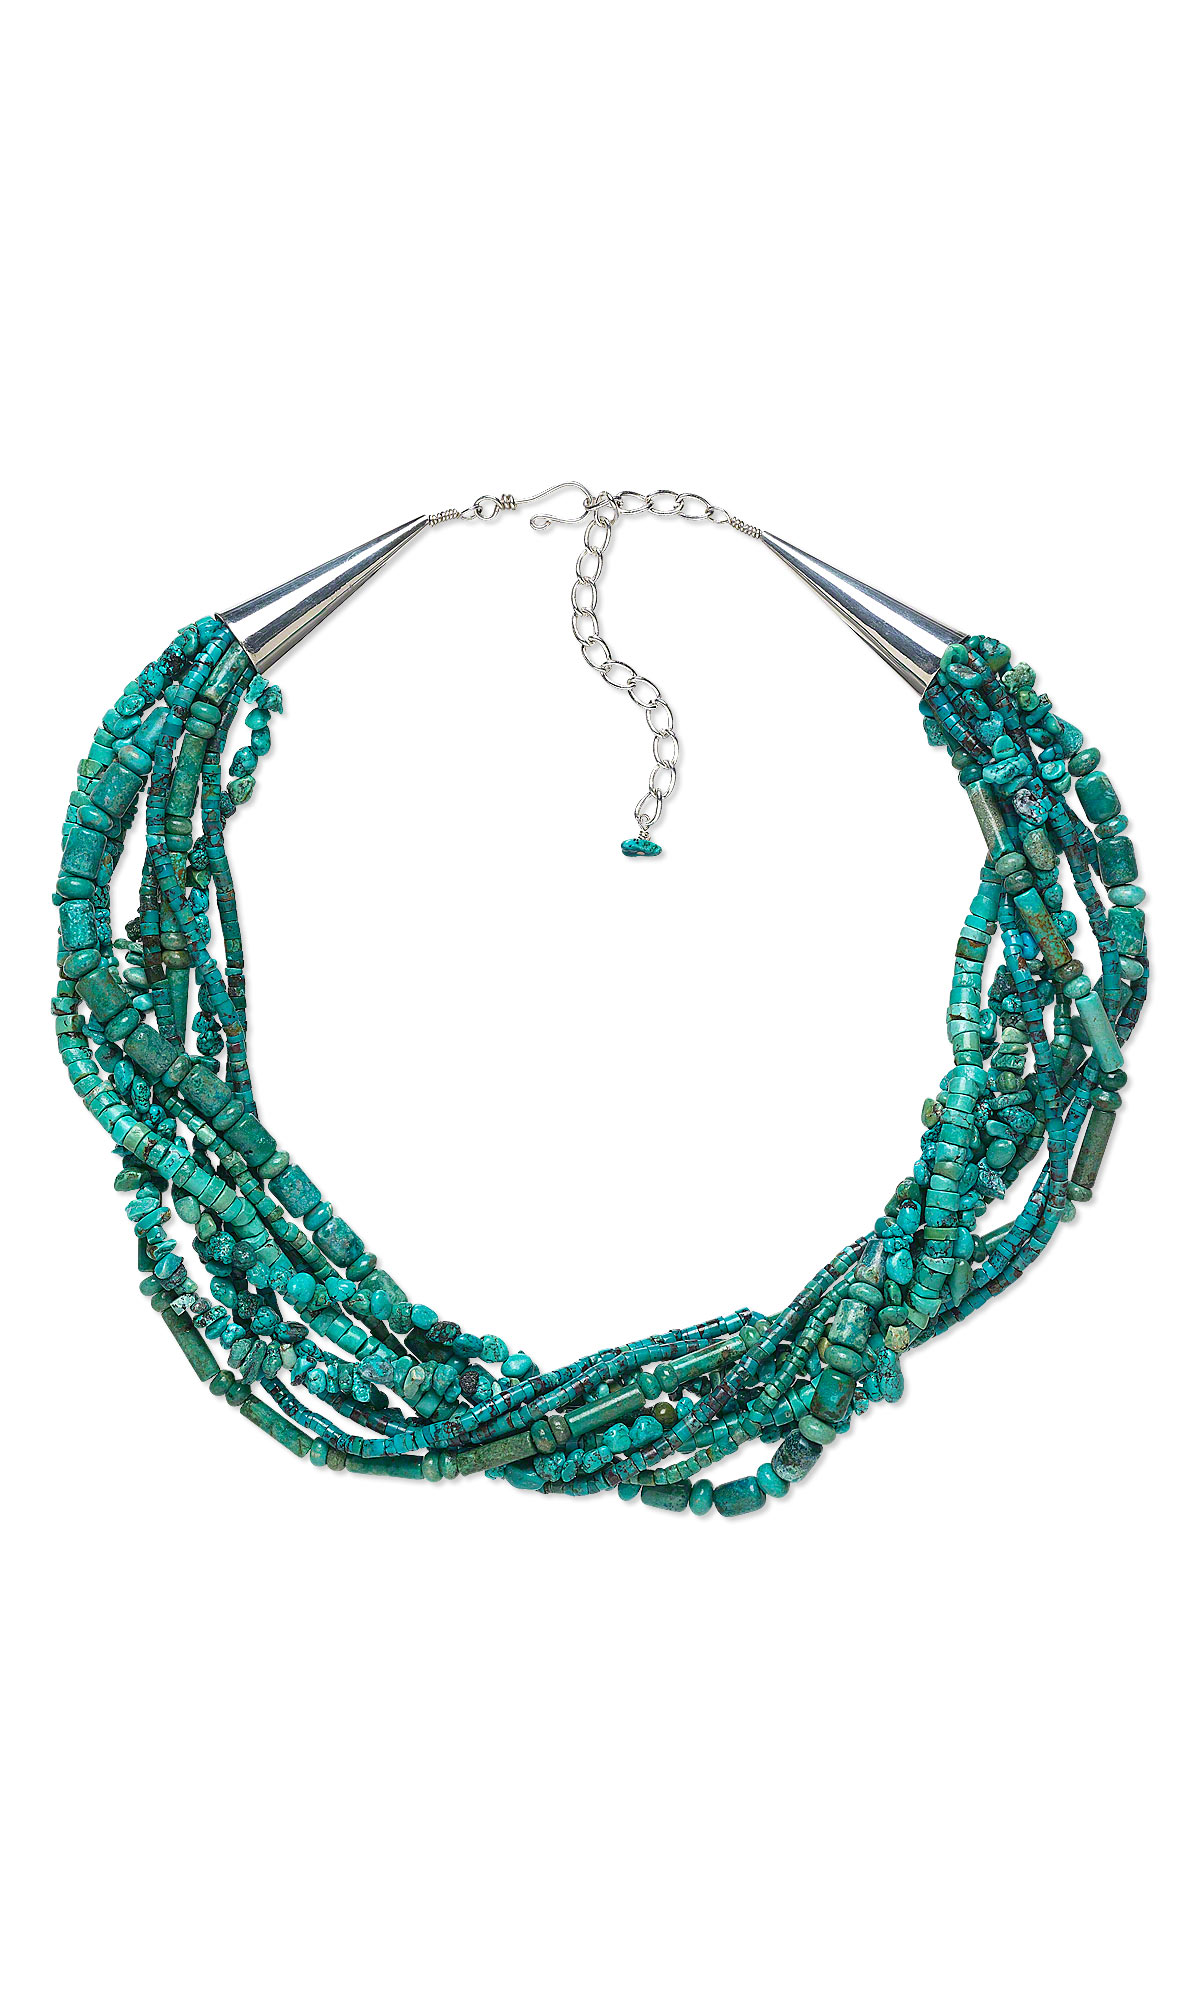 Gemstone bead jewelry designs : Jewelry design multi strand necklace with turquoise